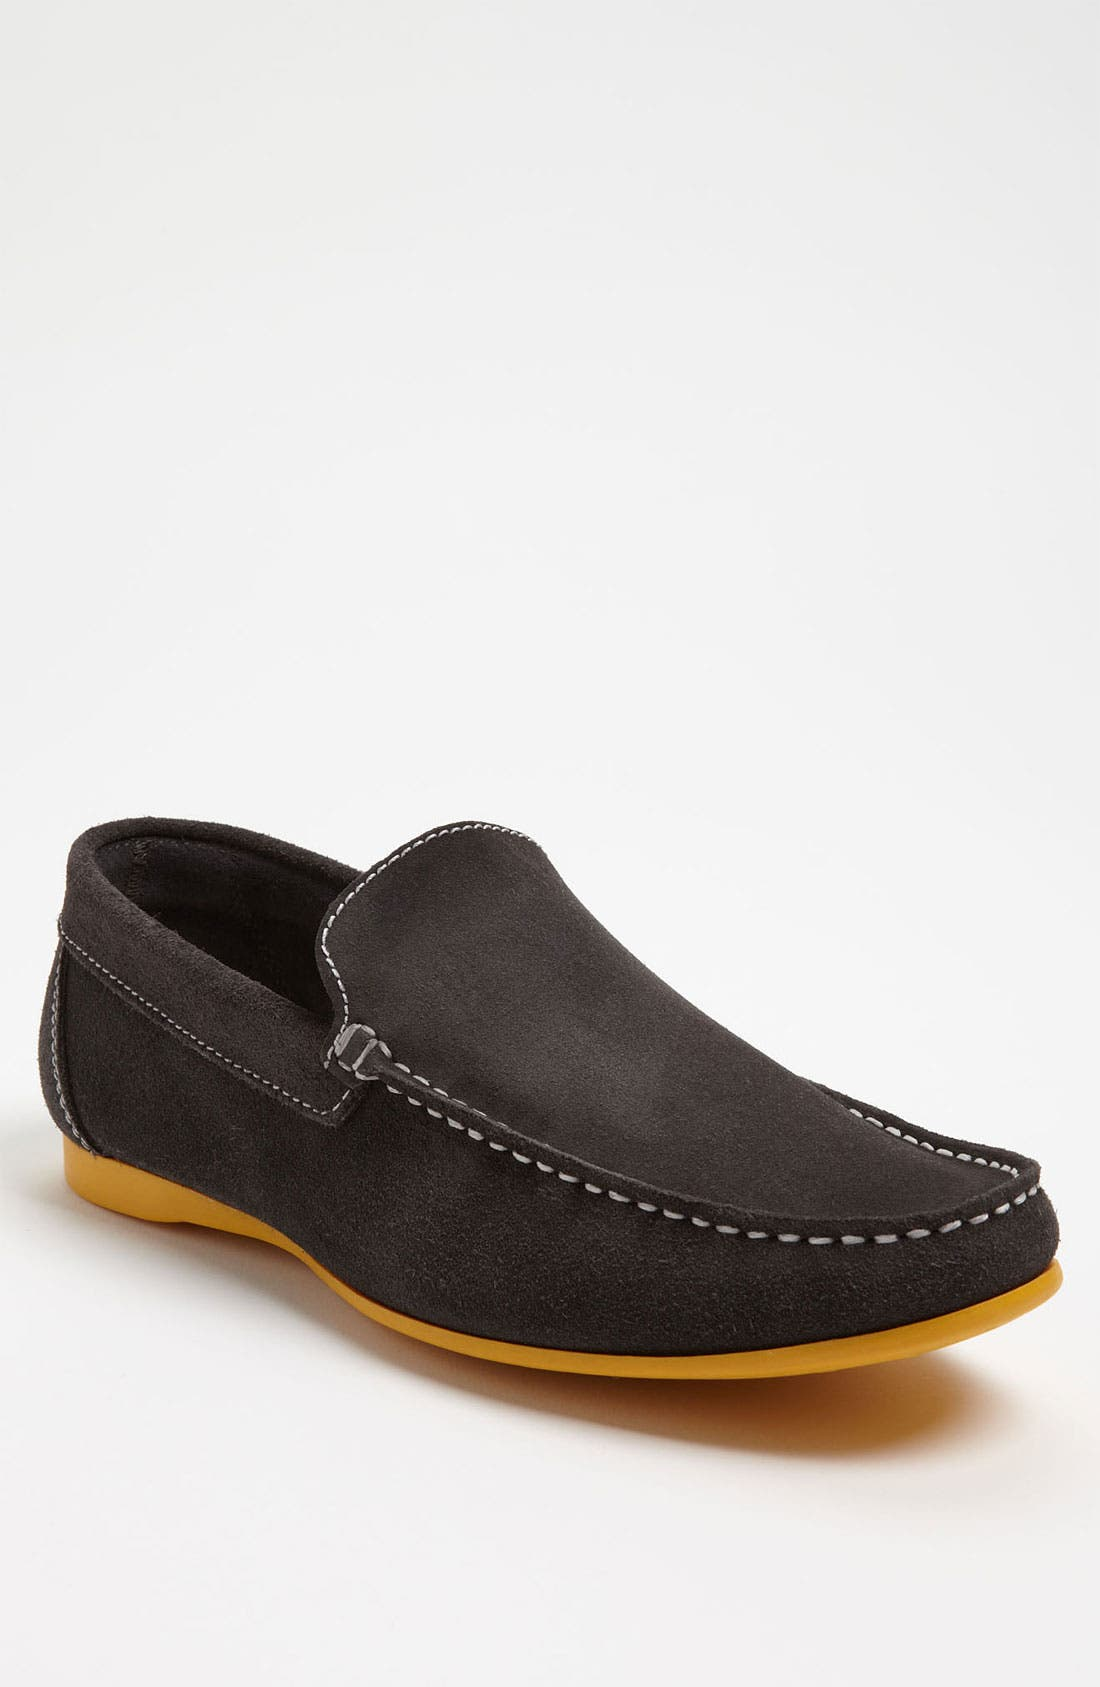 Main Image - Kenneth Cole Reaction 'Contrast Winner' Loafer